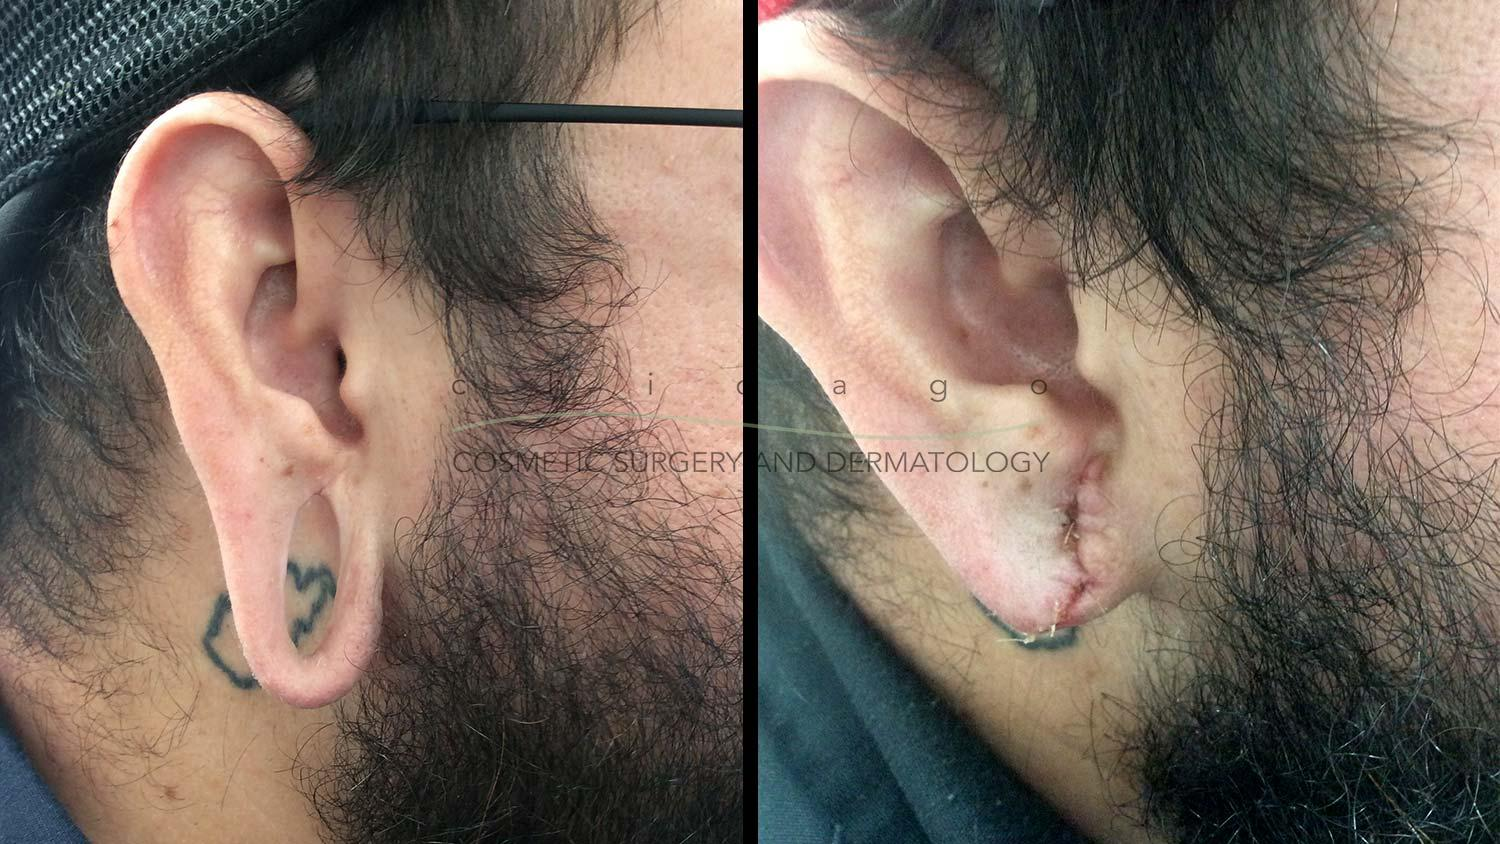 earlobe repair chicago before and after